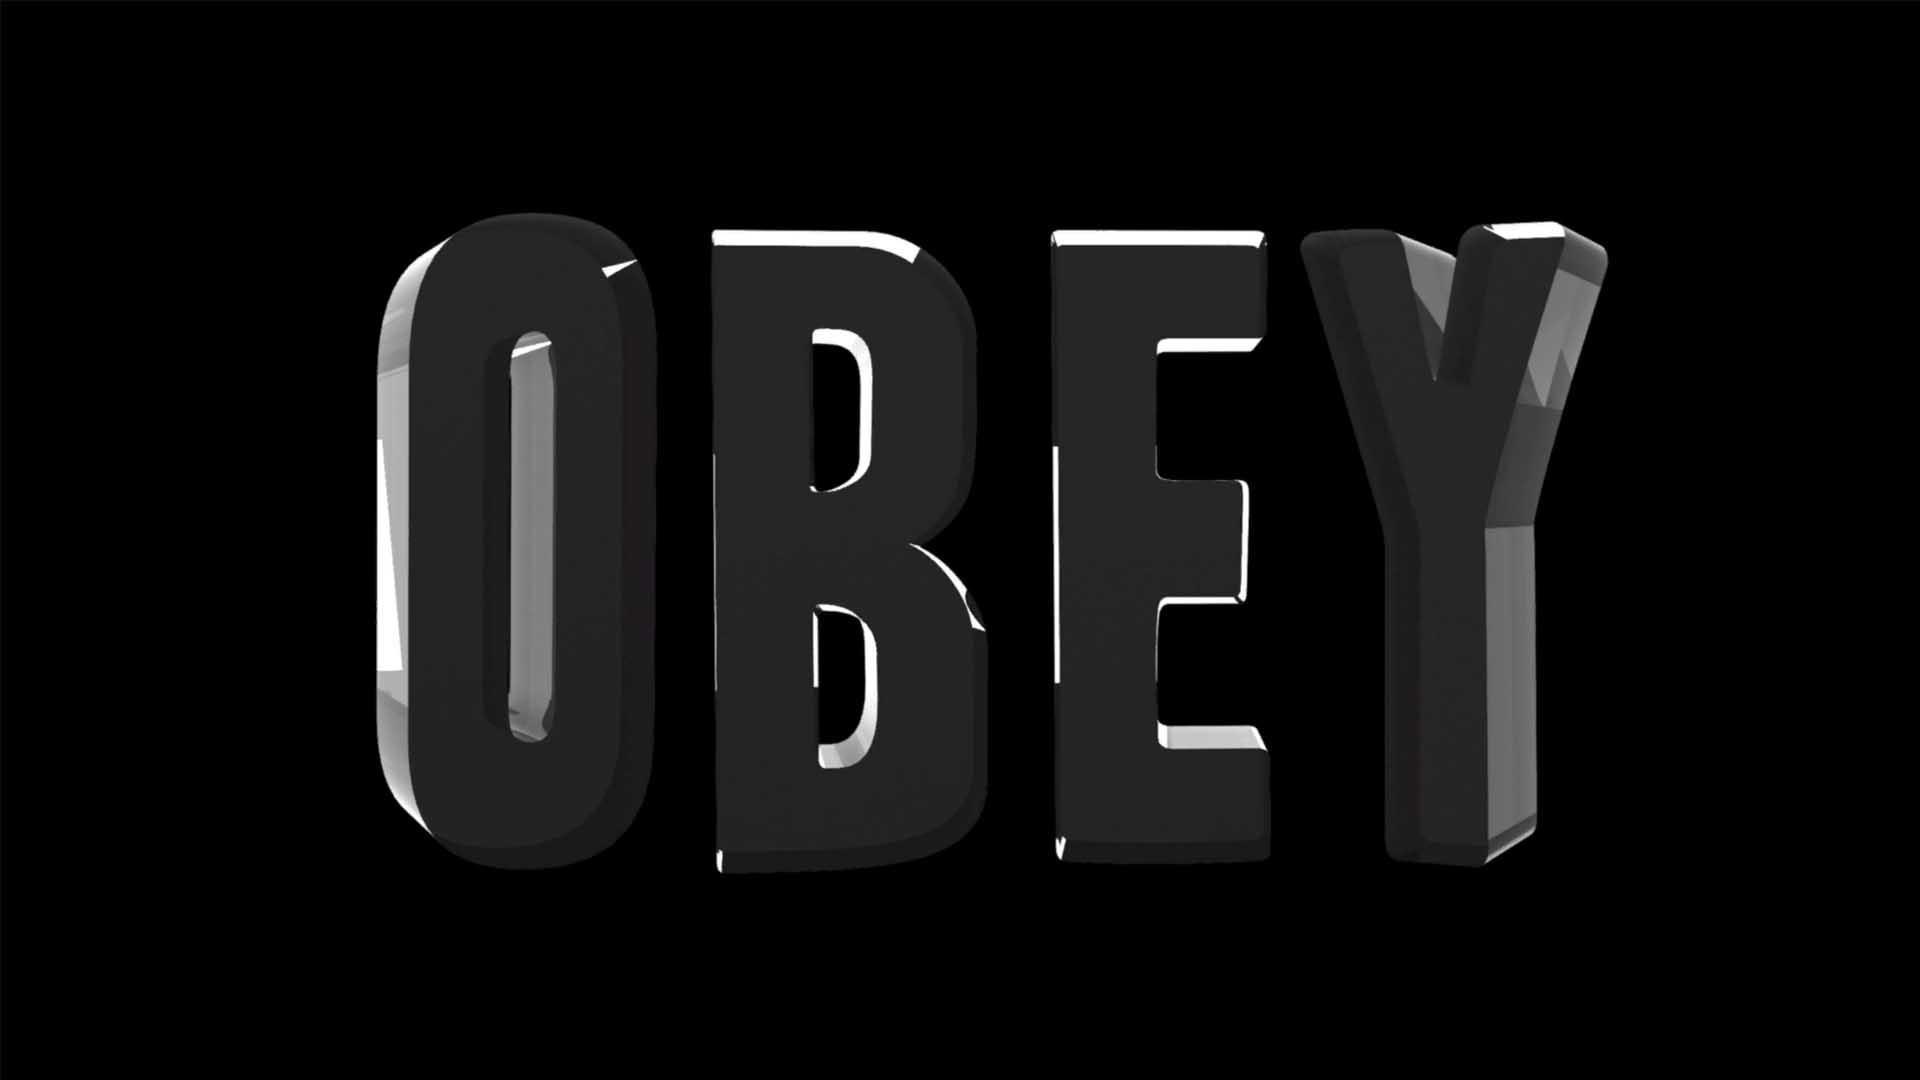 obey text